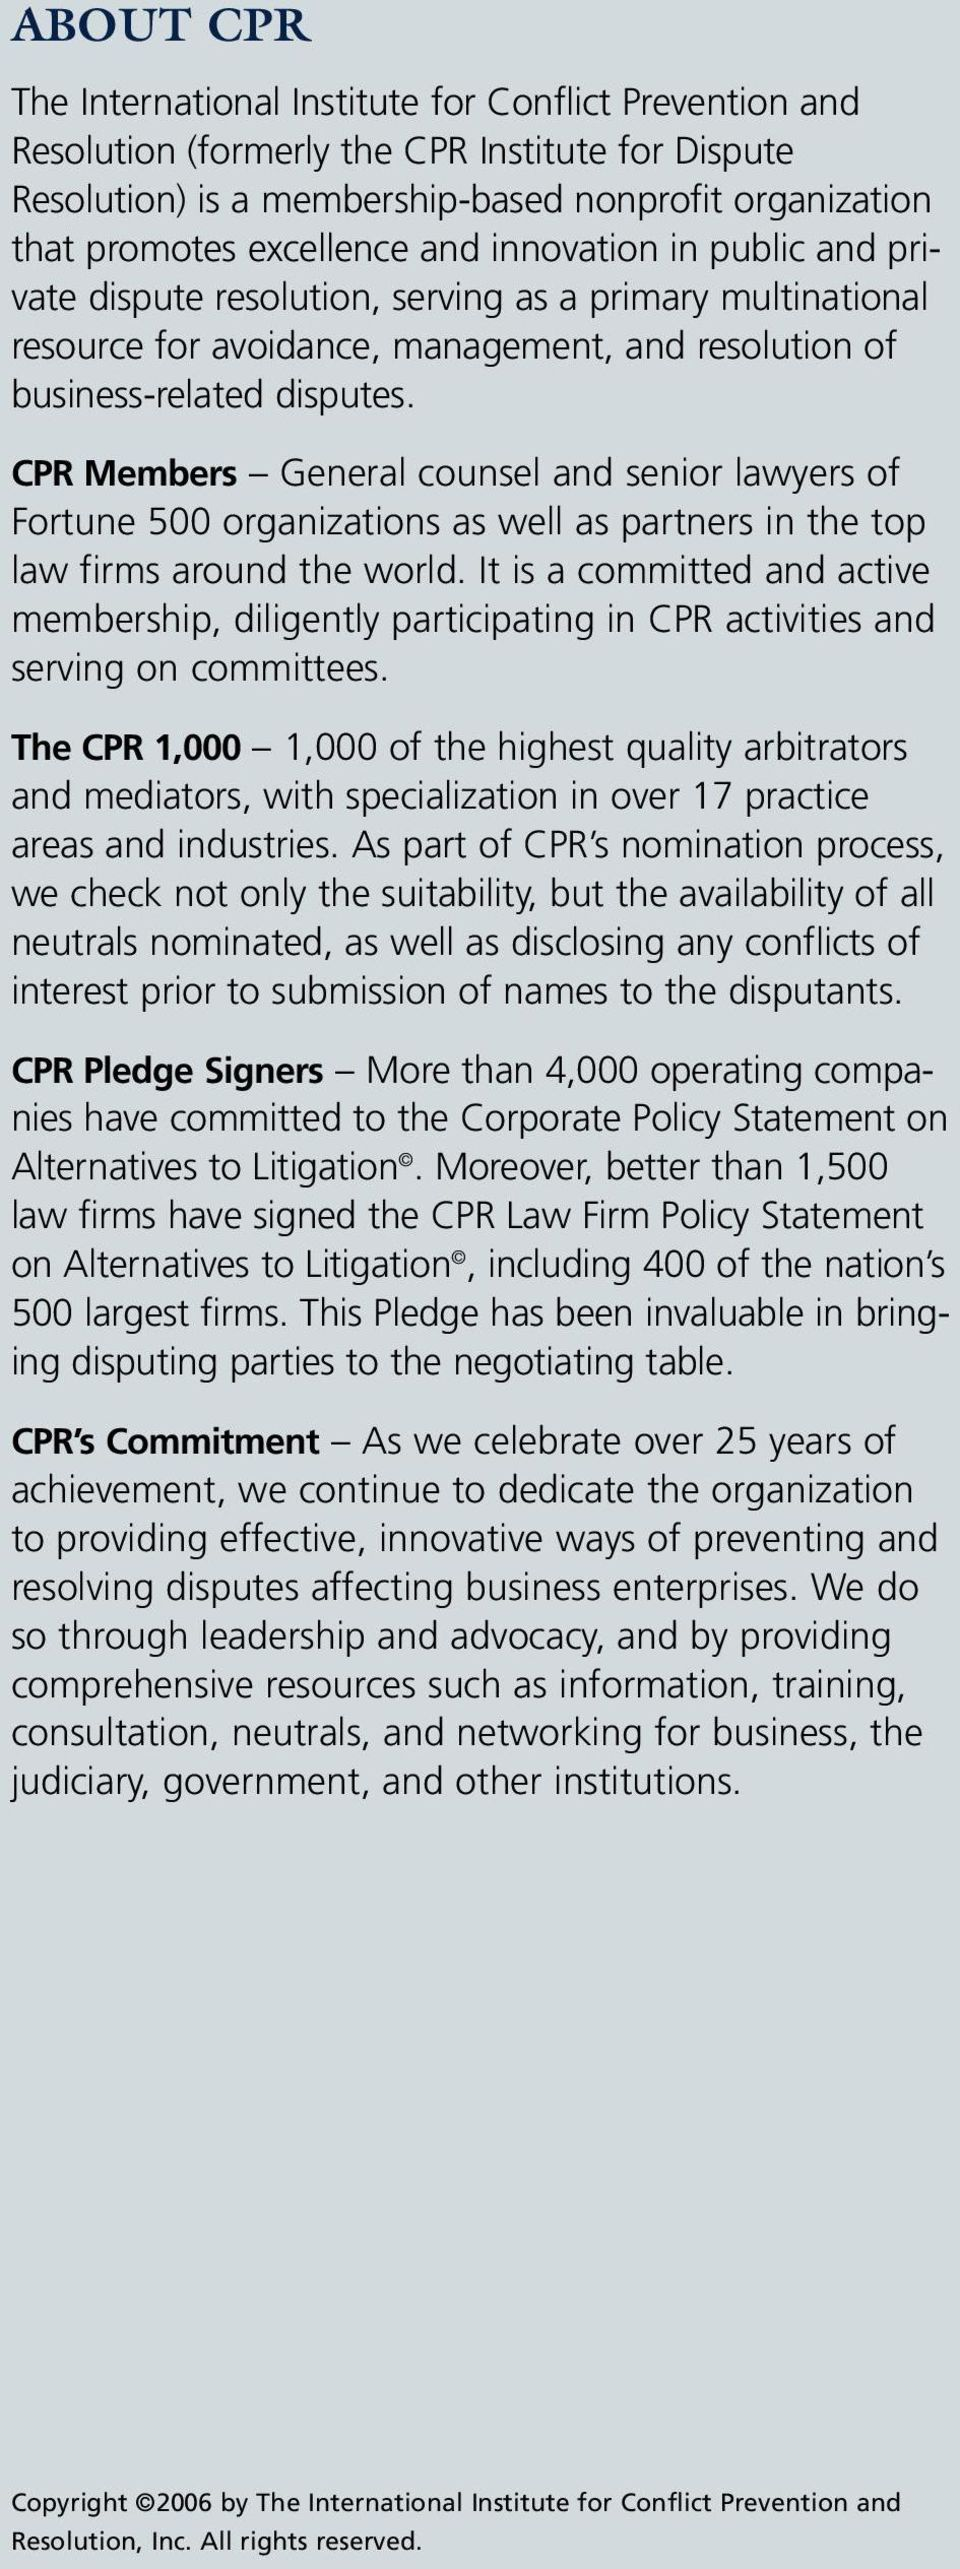 CPR Members General counsel and senior lawyers of Fortune 500 organizations as well as partners in the top law firms around the world.